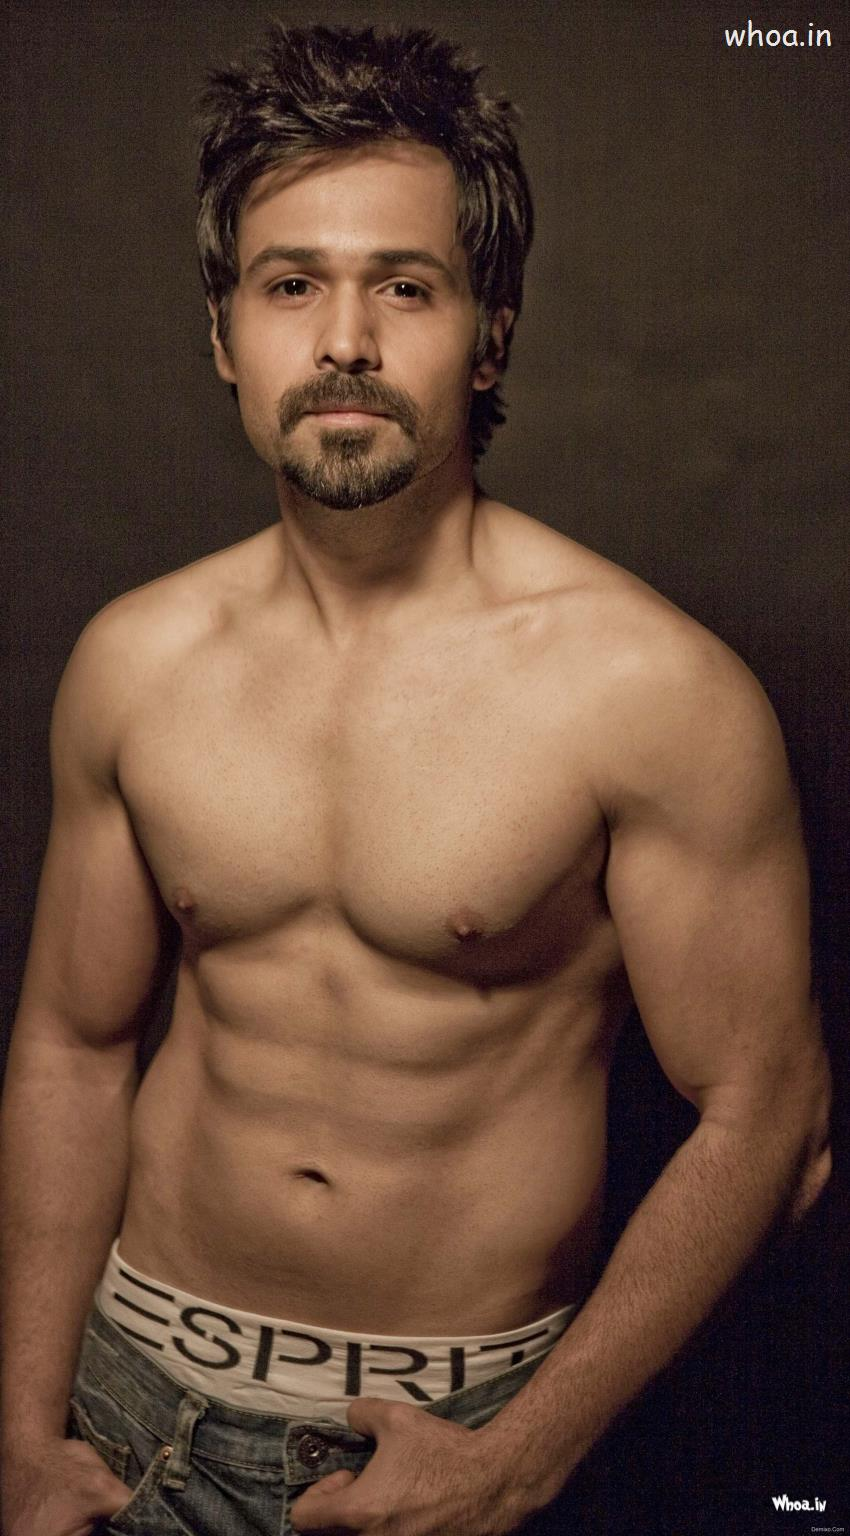 Emraan Hashmi Stylish Body Shape And Six Pack